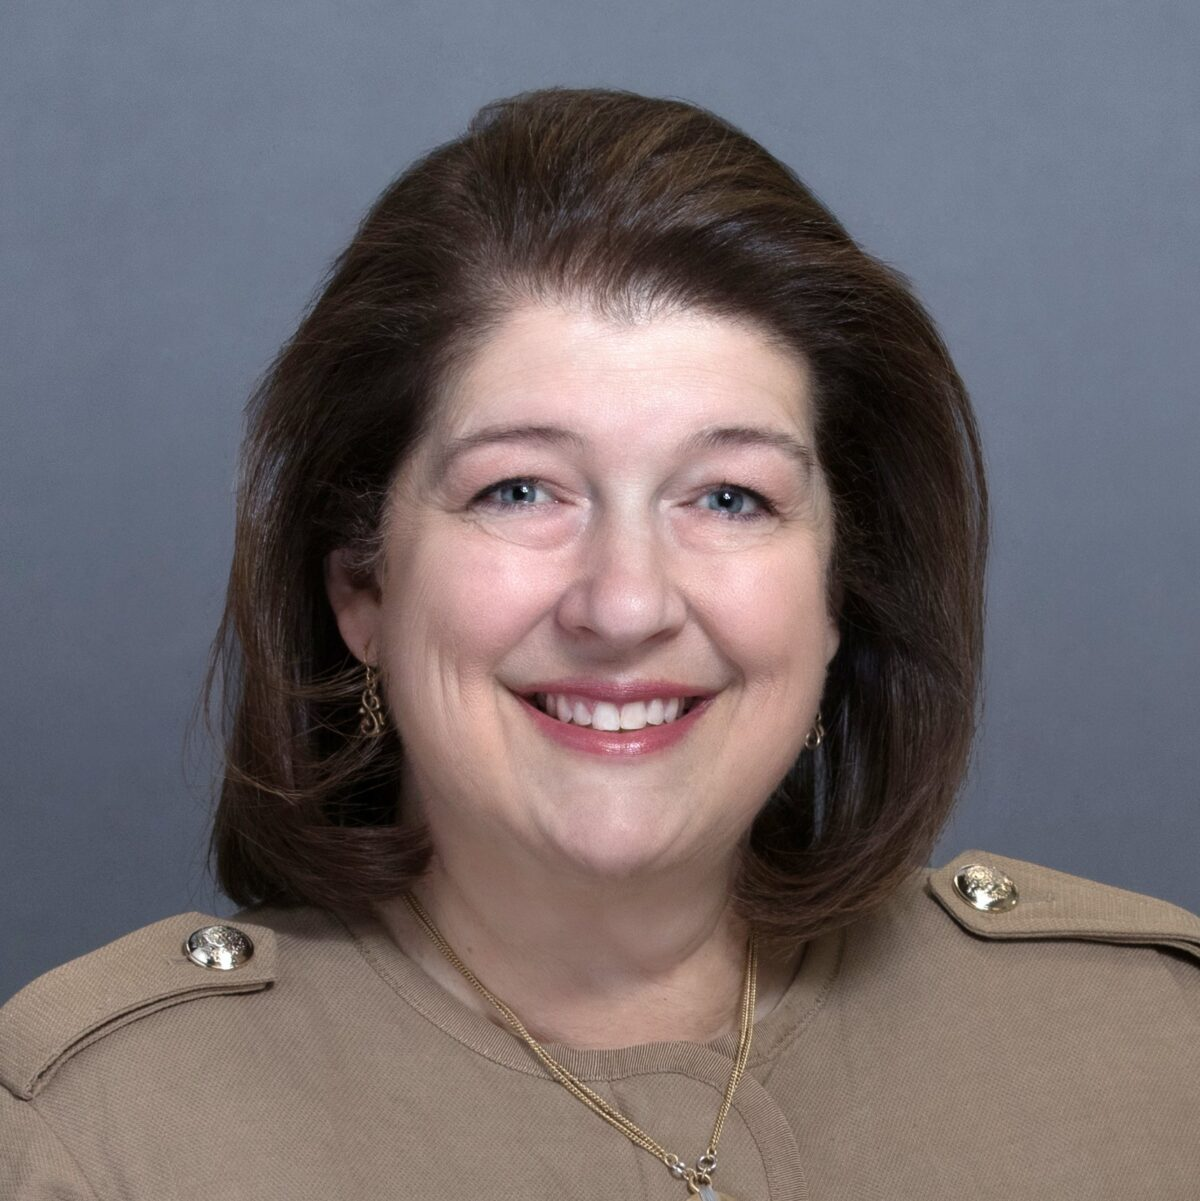 Elizabeth Krohn – Changed in a Flash: One Woman's Extraordinary NDE, Presented by Dallas / Ft Worth IANDS